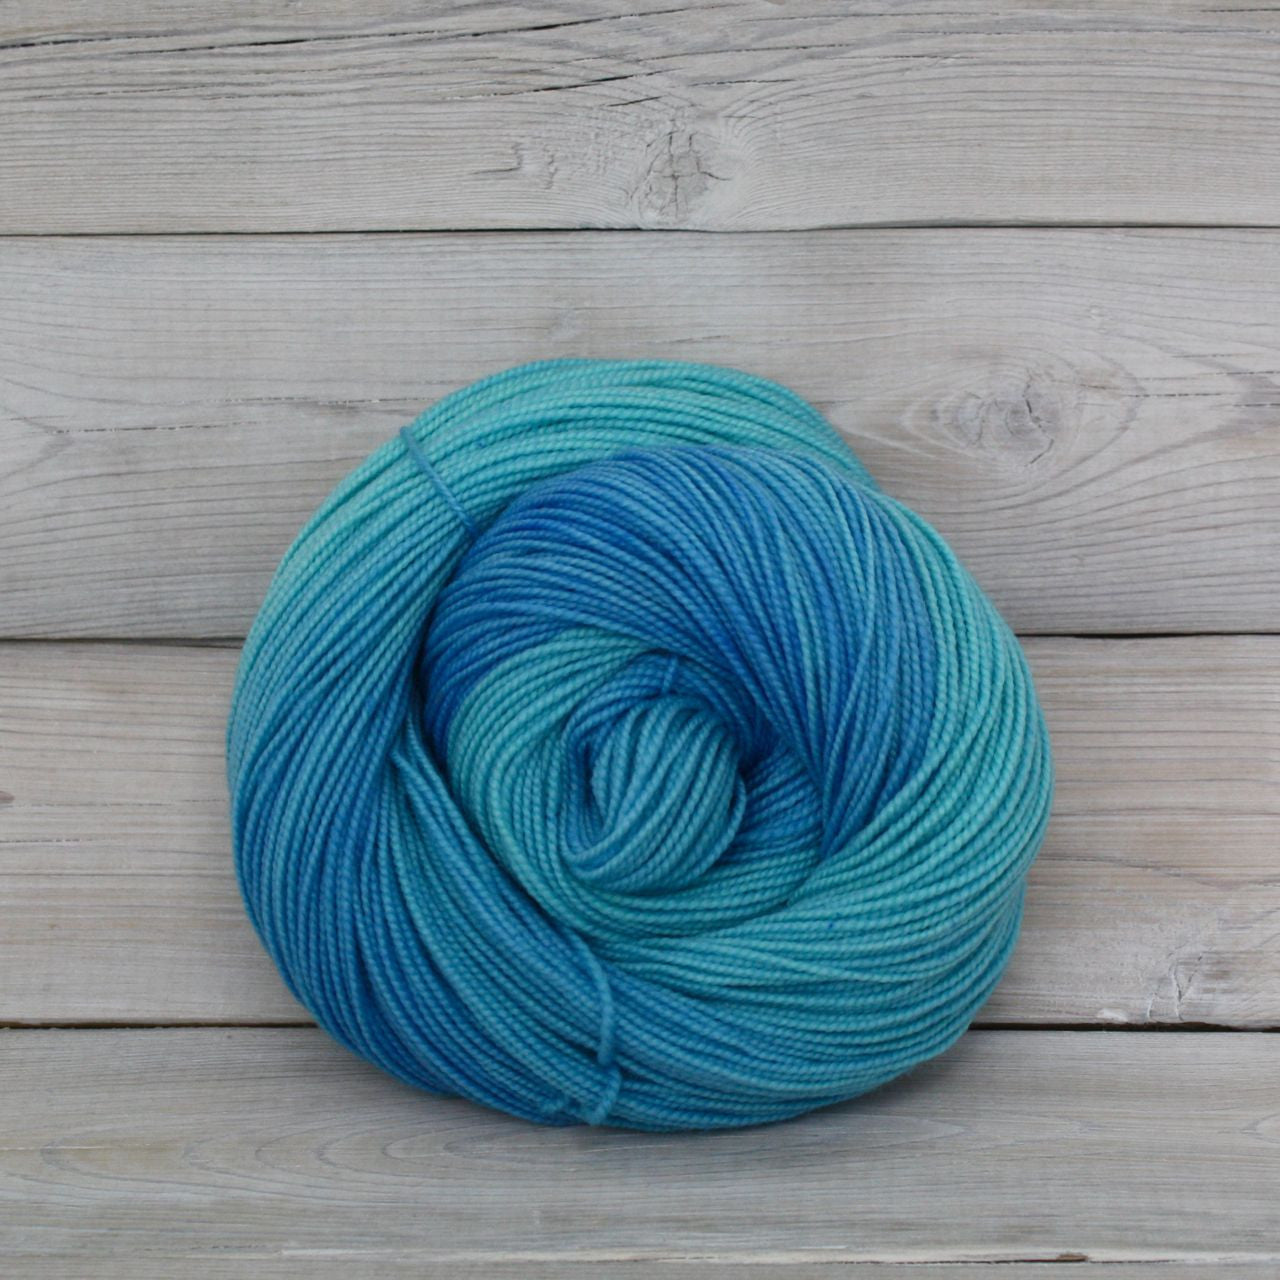 Colorway: Boca Chica | Dyed to Order Yarn